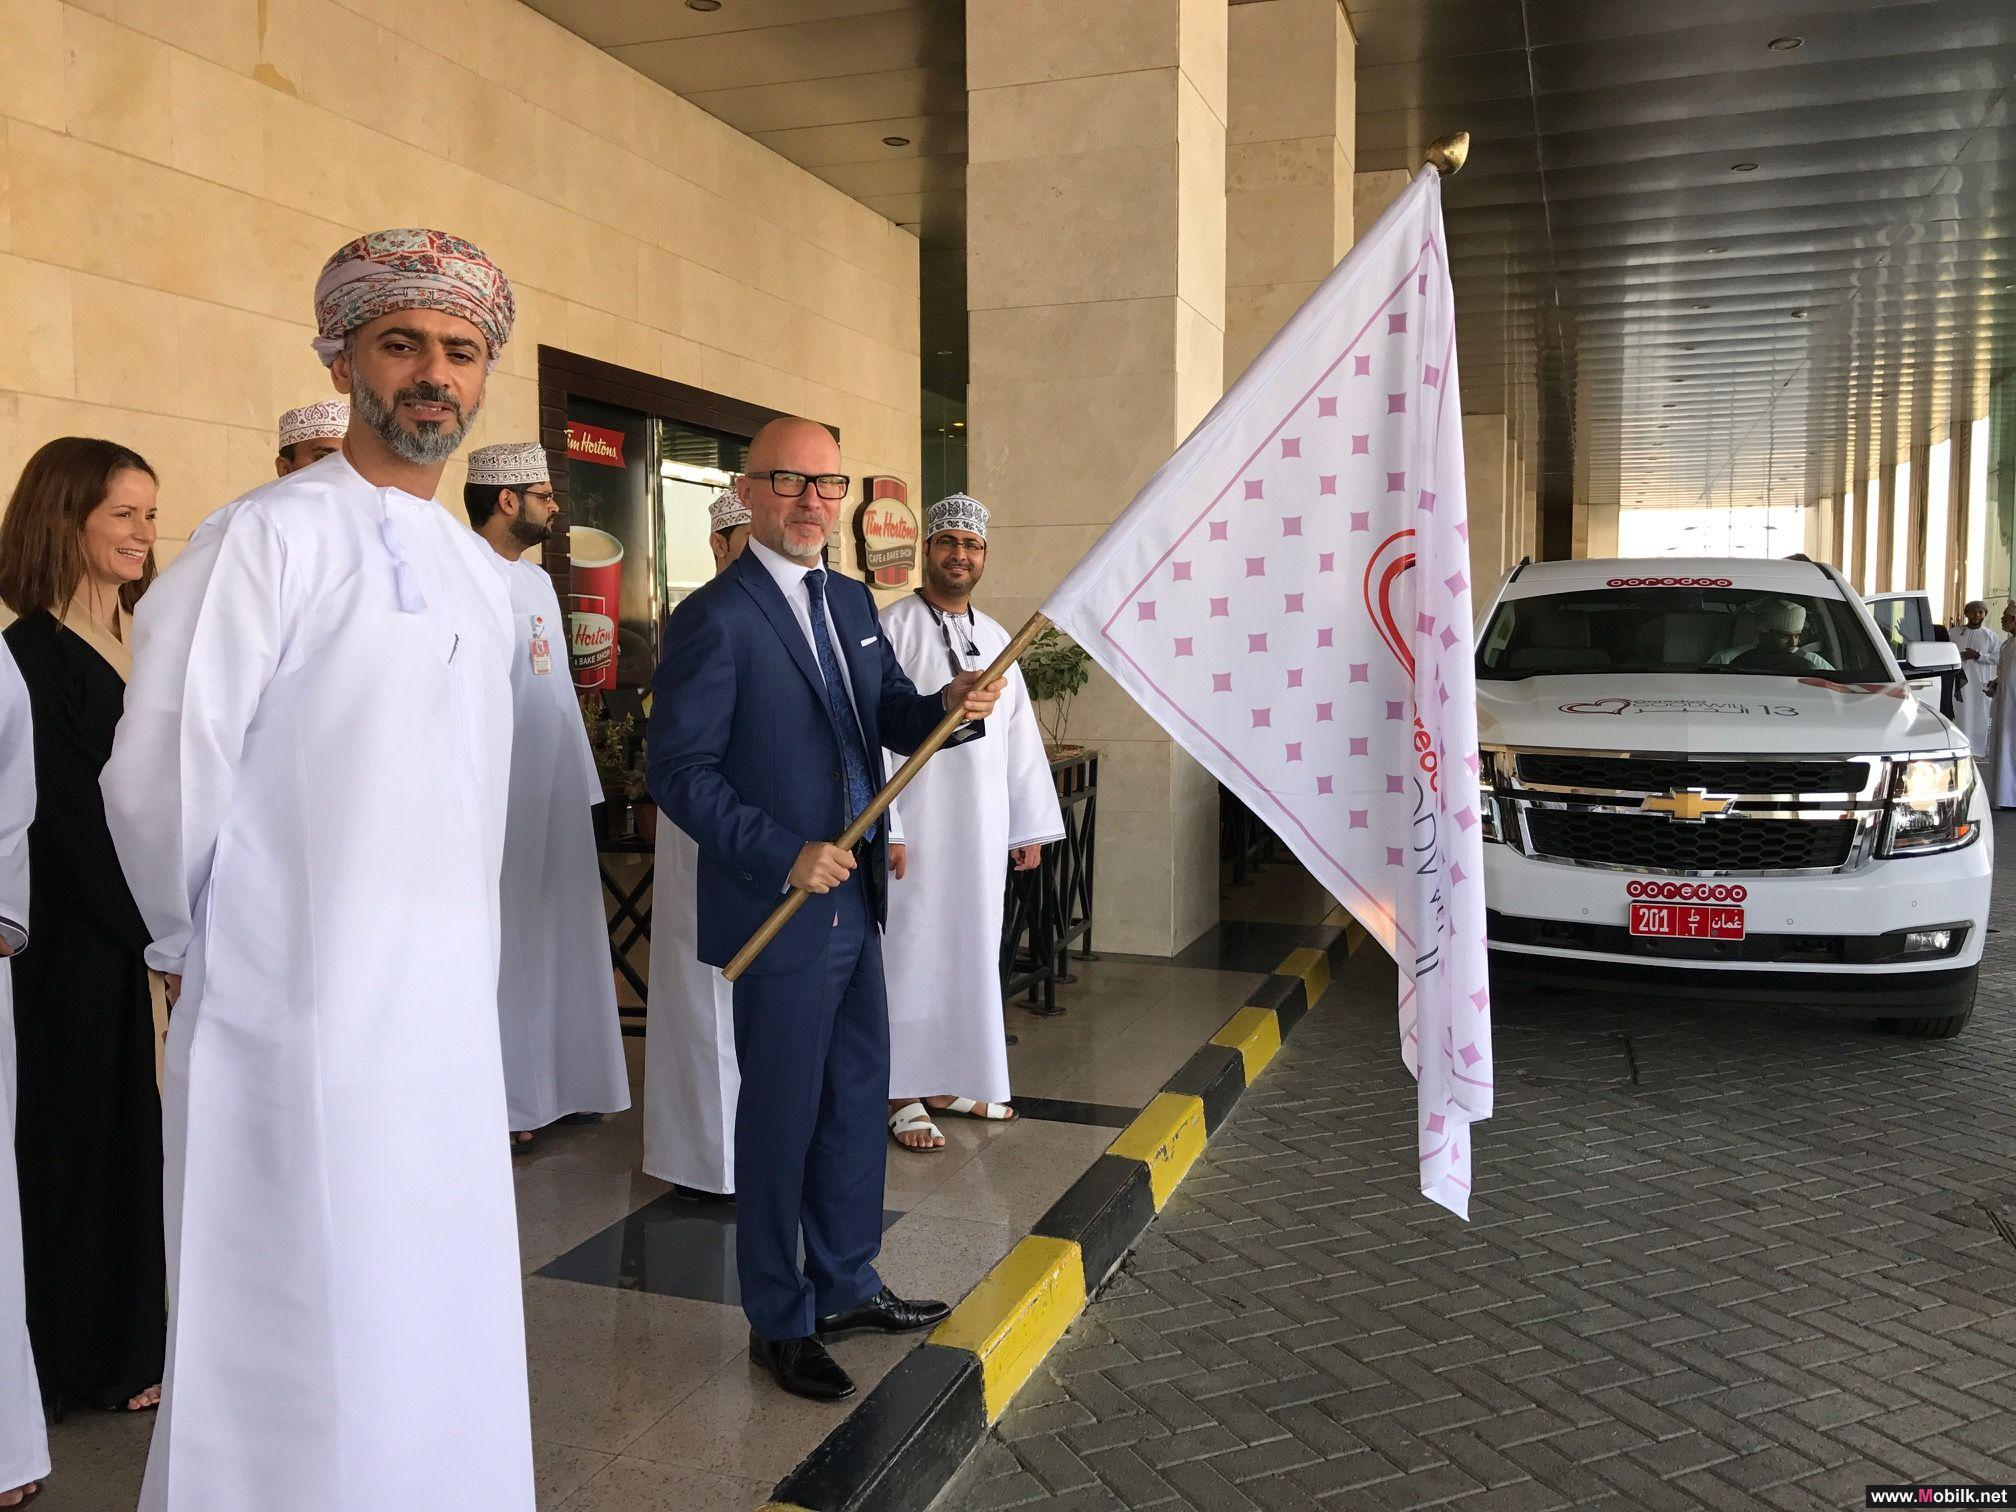 Ooredoo Celebrates the Start of the 13th Goodwill Journey at Muscat Grand Mall